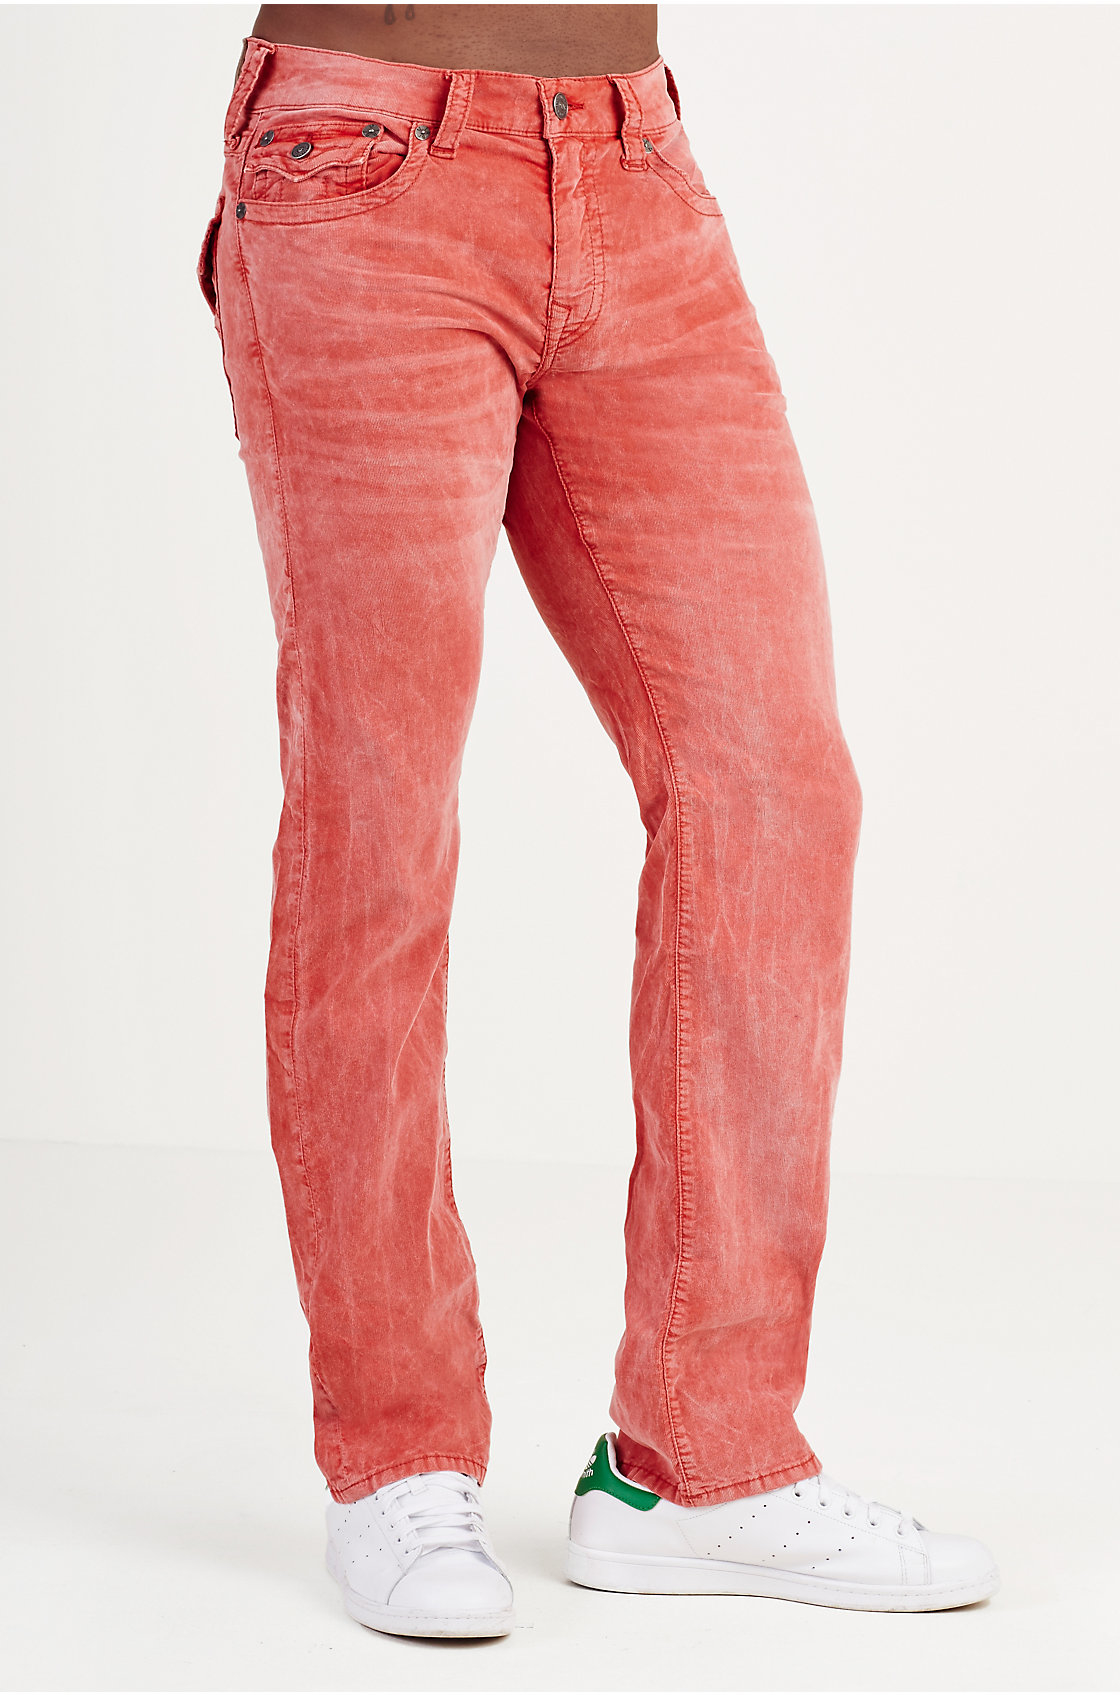 True religion Ricky Straight Acid Wash Mens Corduroy Pant in Red ...